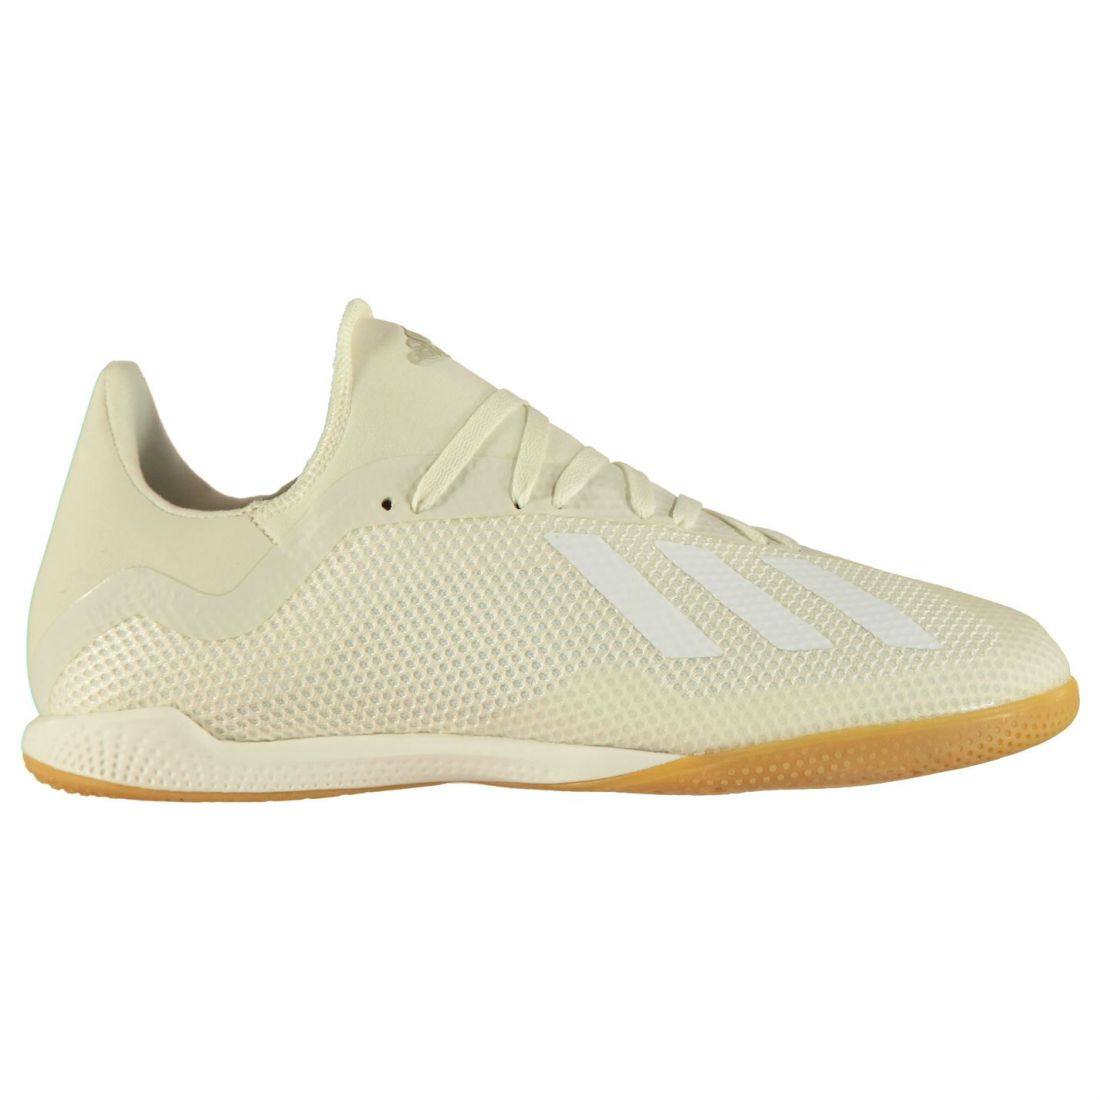 online store 54fae 15bc4 Details about adidas X Tango 18.3 Indoor Football Sneakers Mens Gents Boots  Laces Fastened